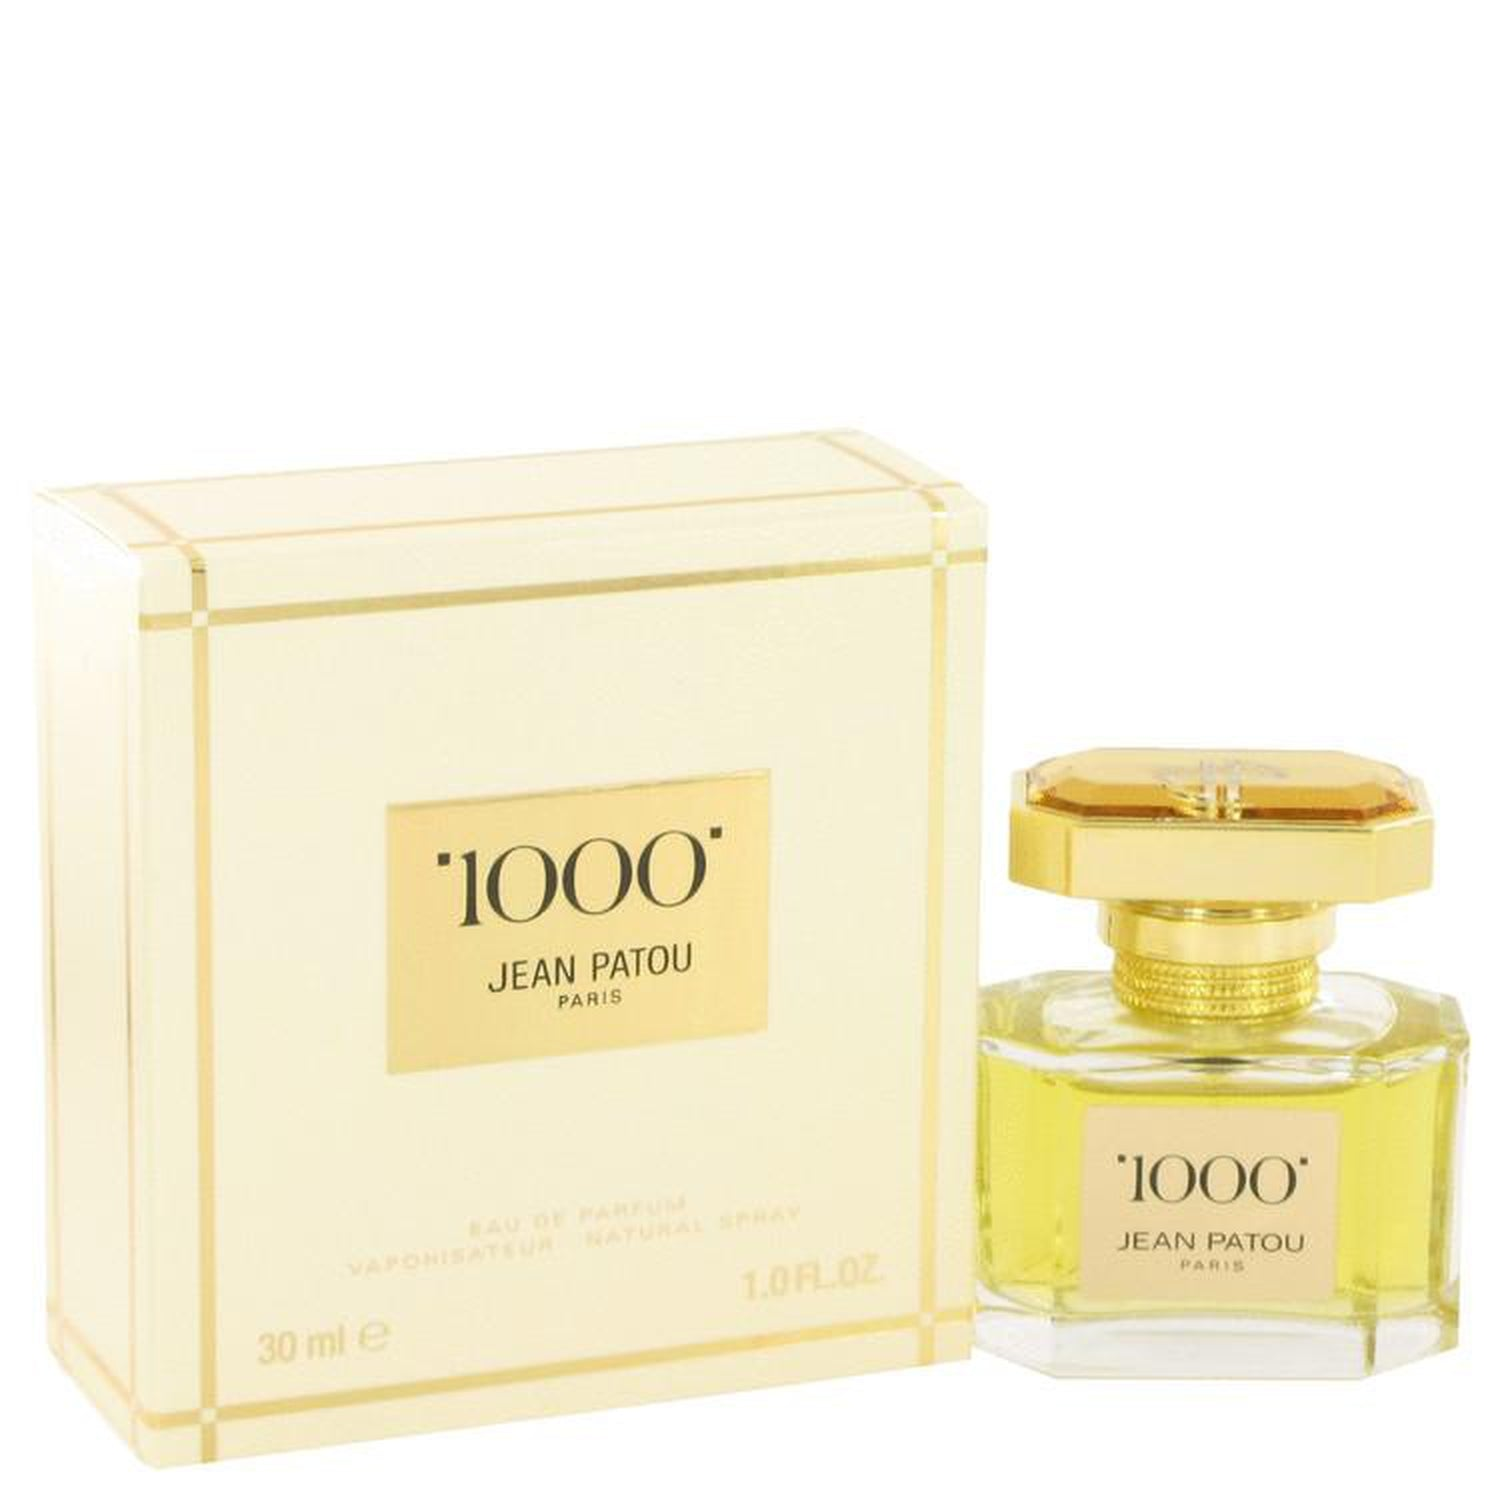 1000 Eau De Parfum Spray By Jean Patou 1 oz Eau De Parfum Spray